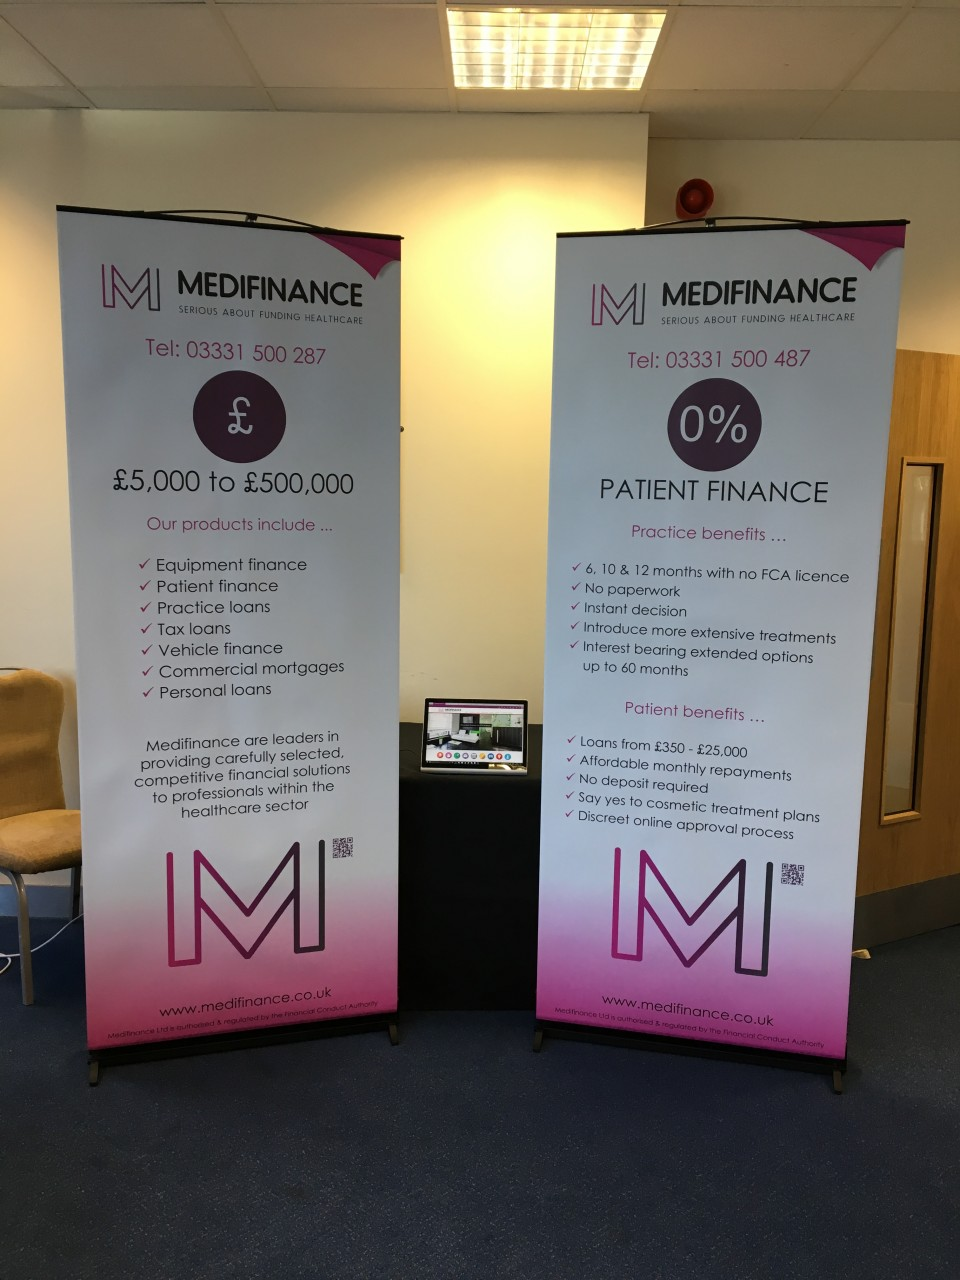 Loving the new look! #conference #newlook #fresh #medifinance #werock